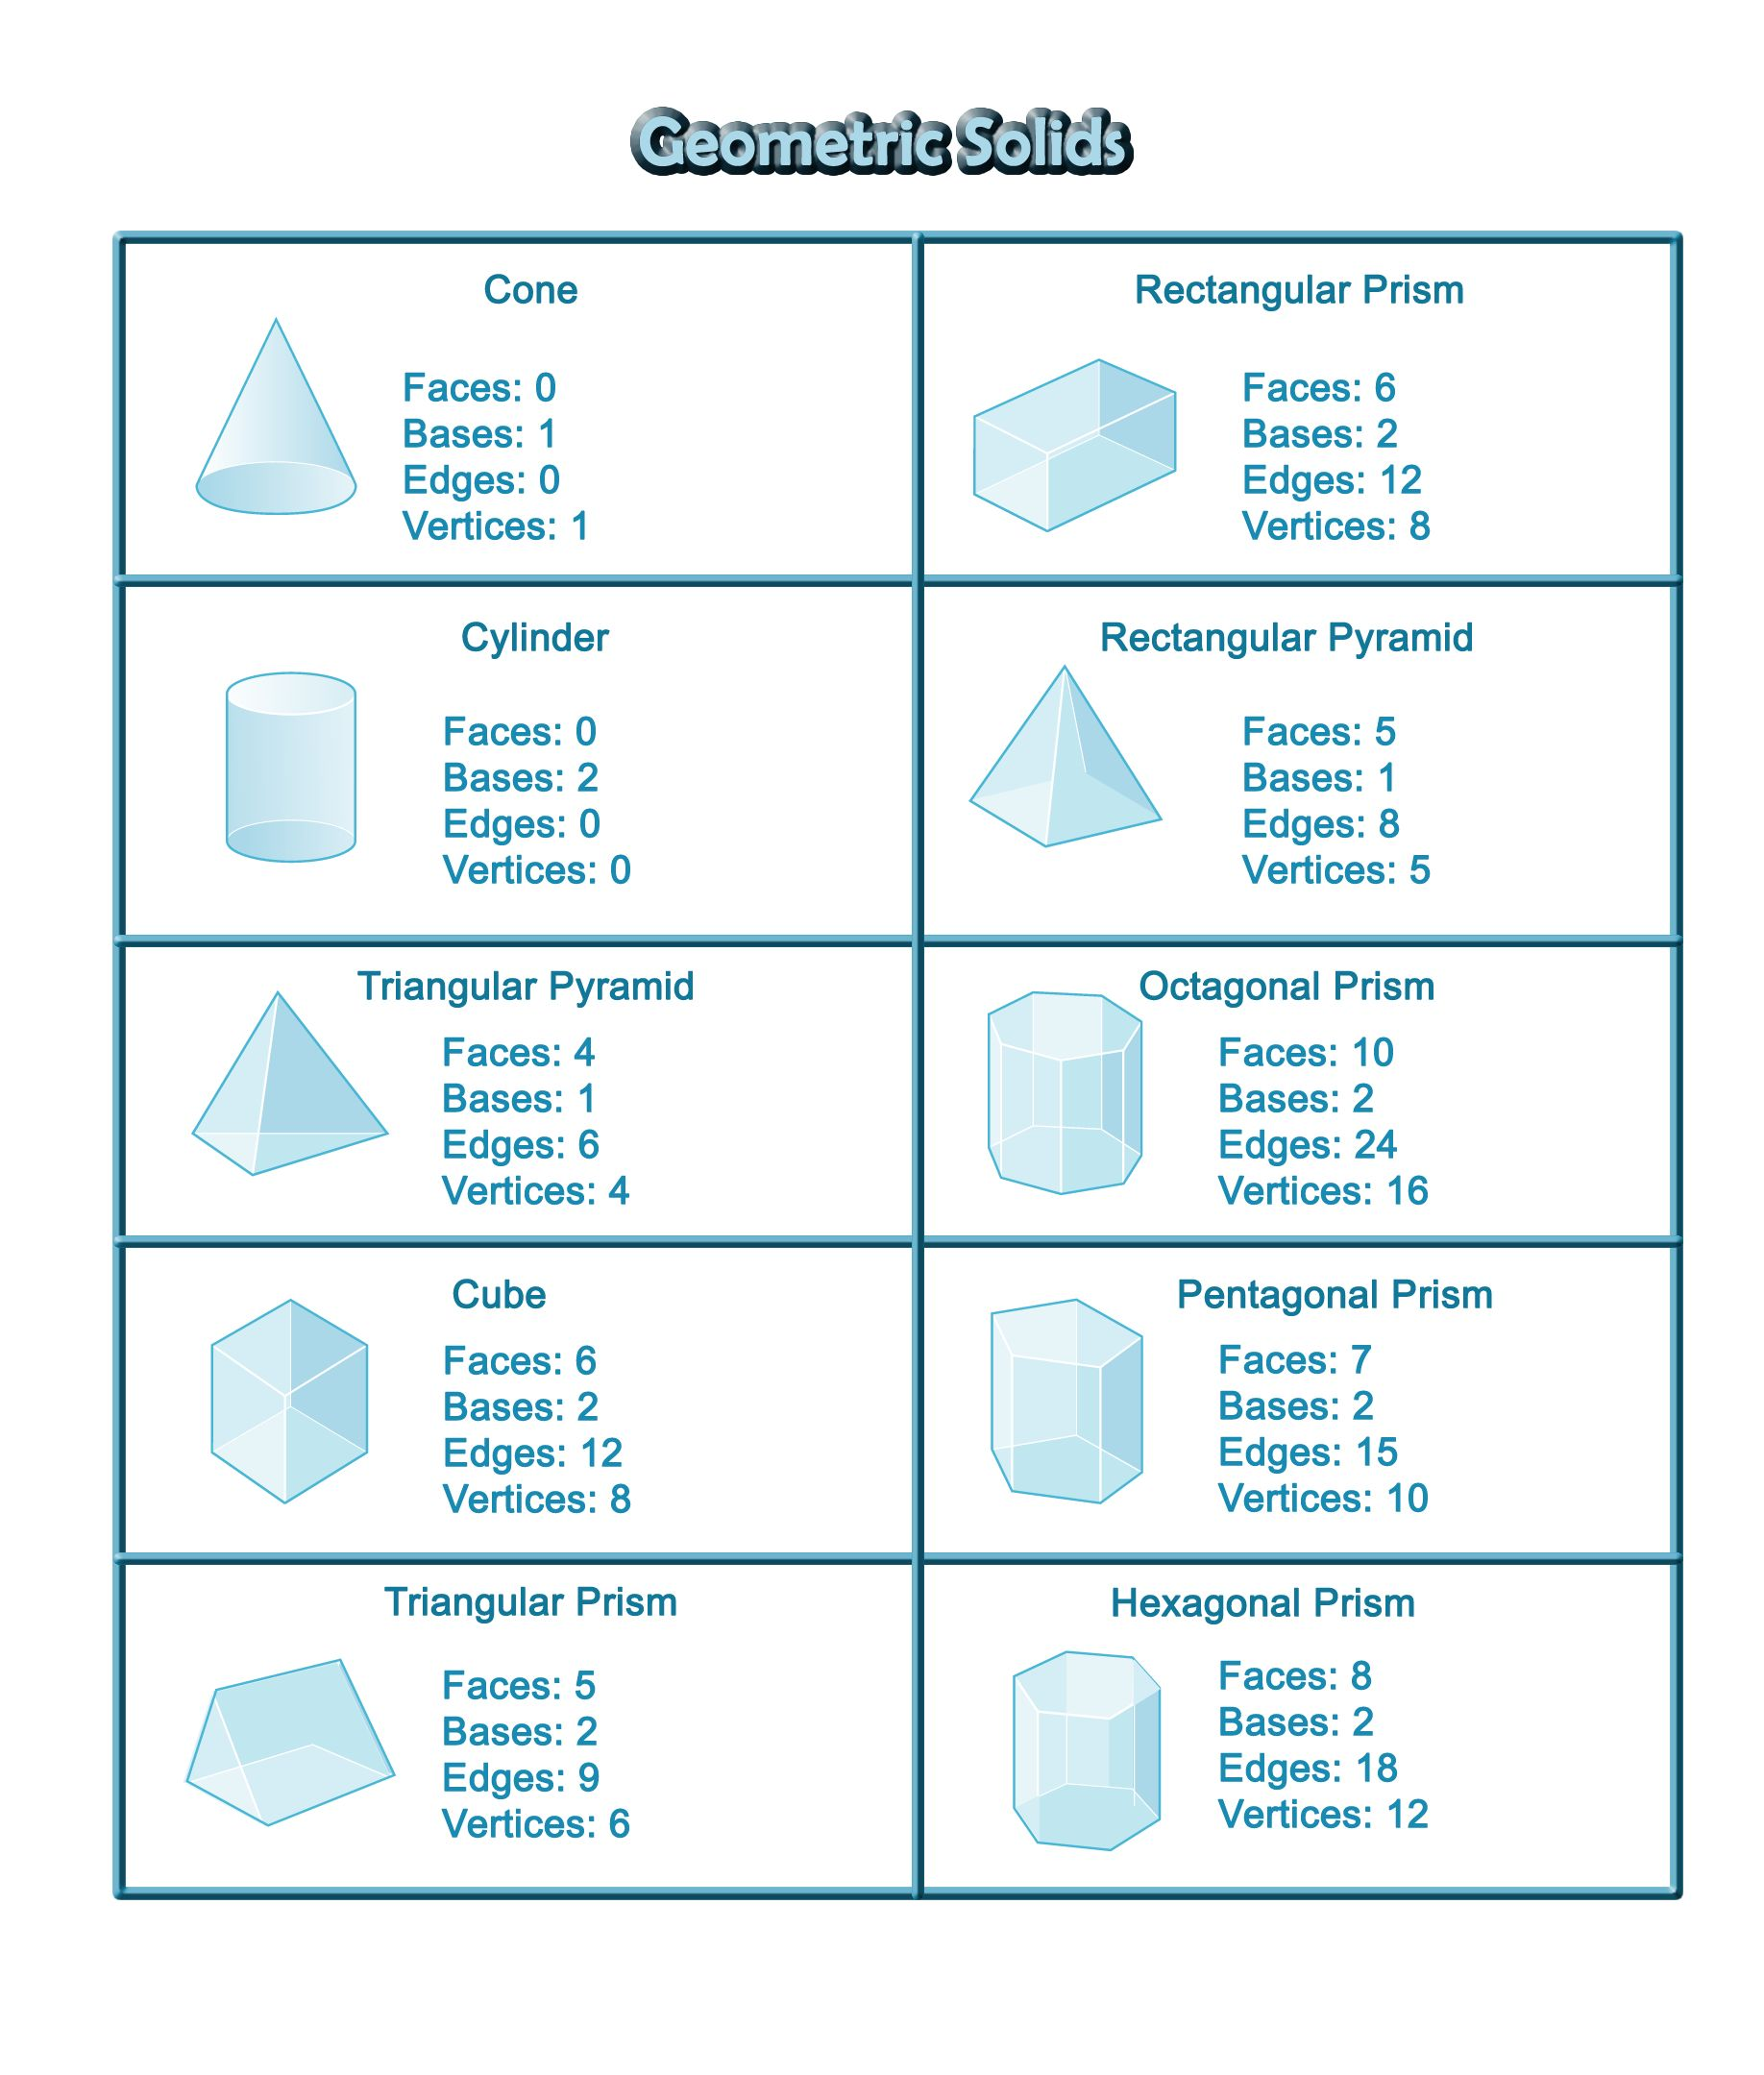 Geometric Solids Nomenclature Cards Cut Up For Matching